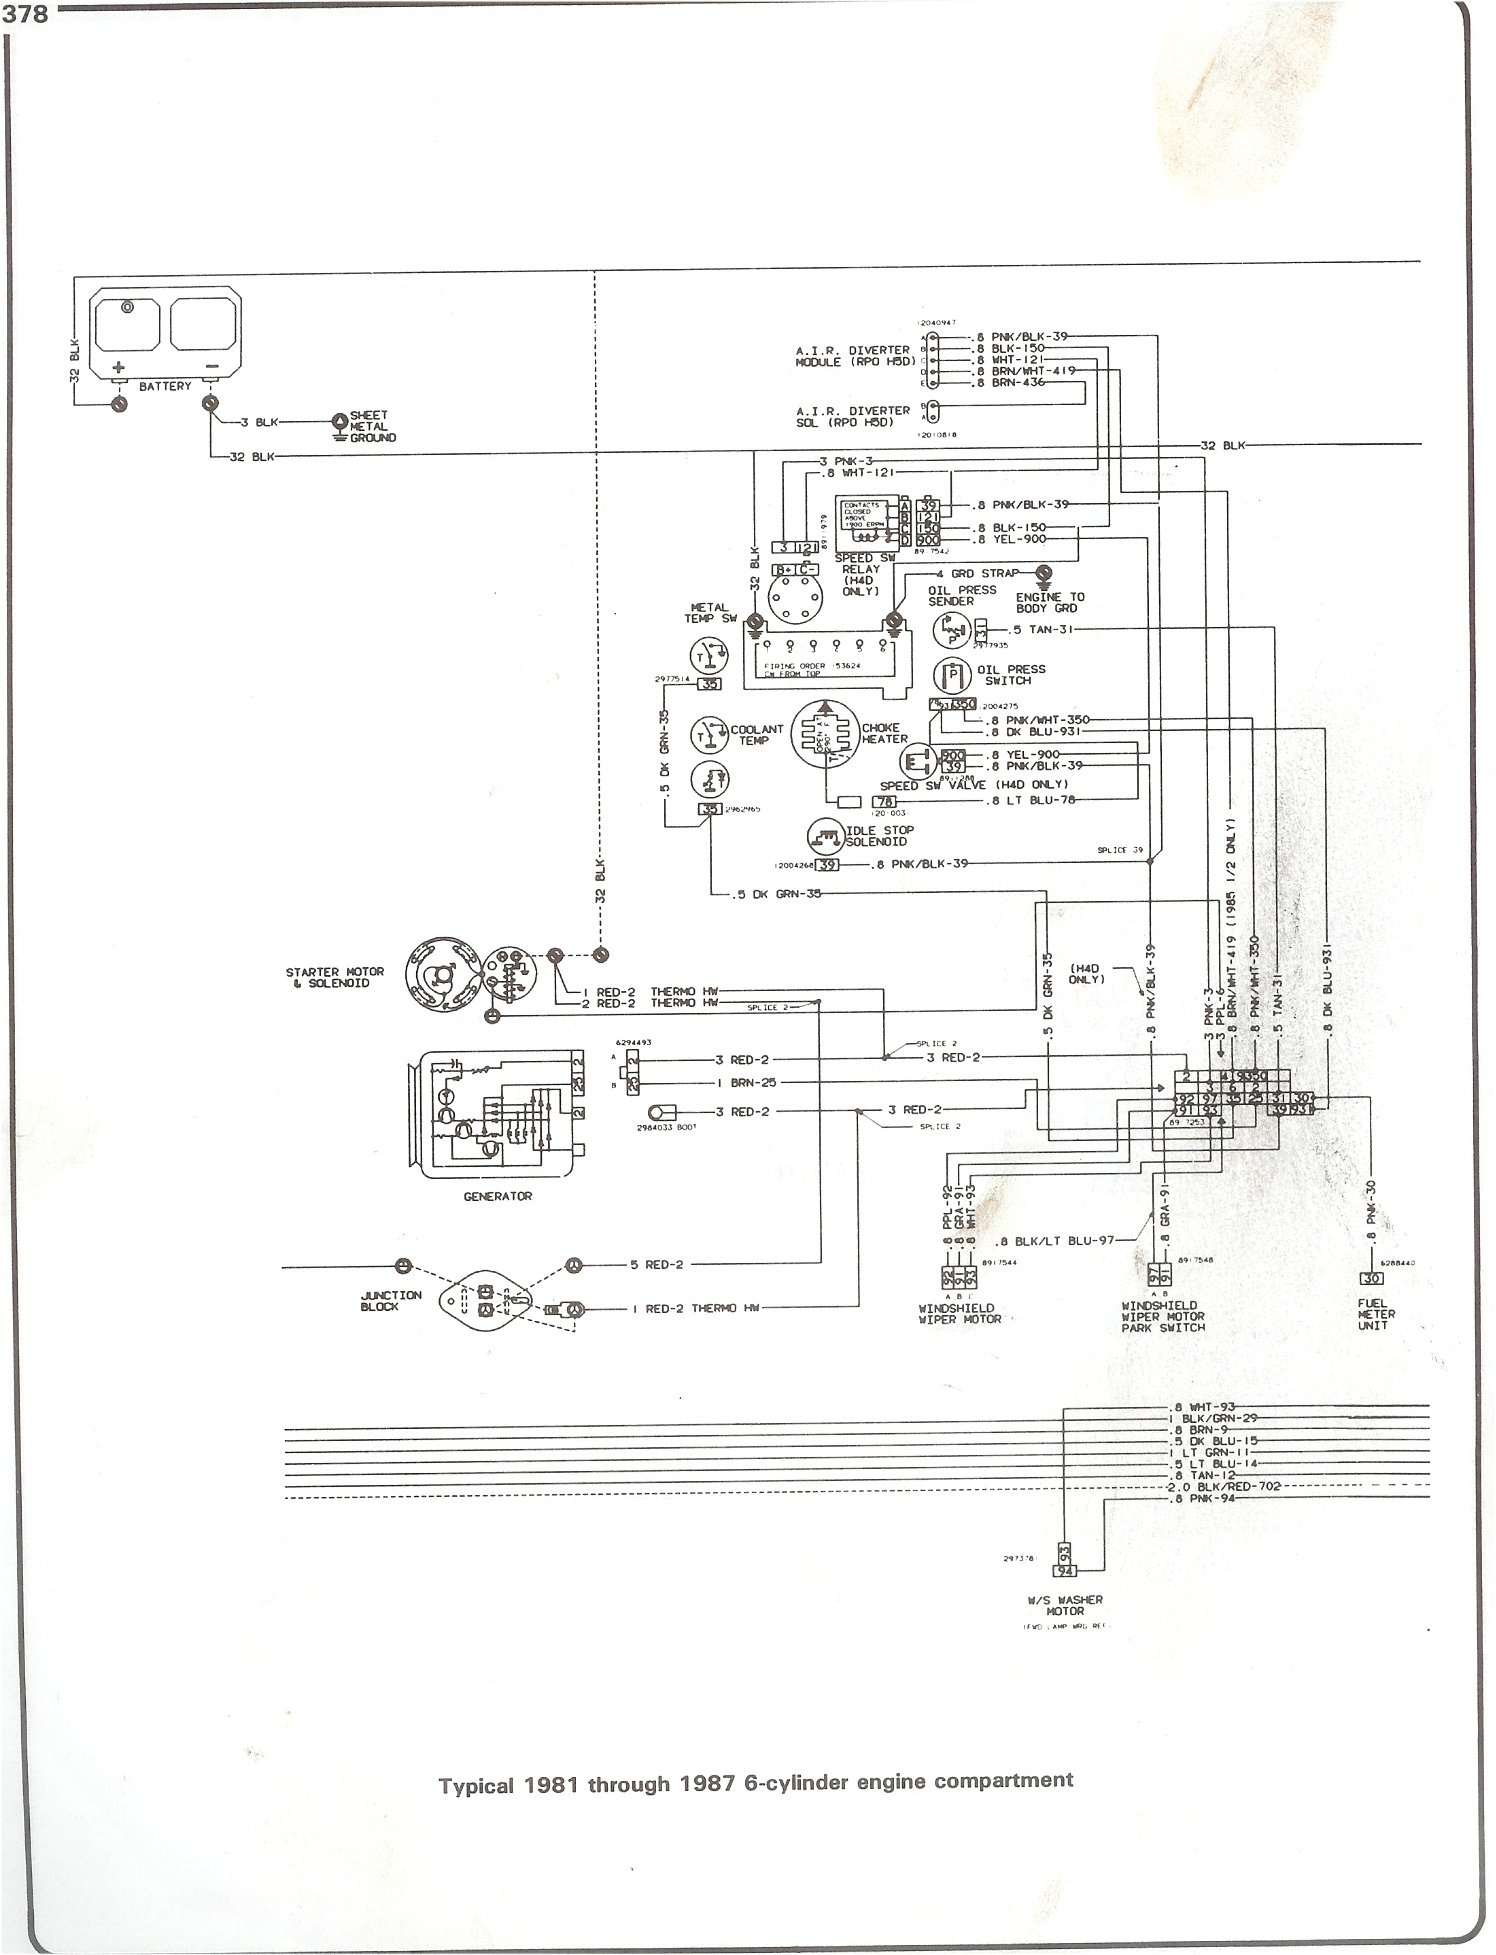 truck engine diagram wiring diagram for you all u2022 rh onlinetuner co chevy silverado engine compartment diagram